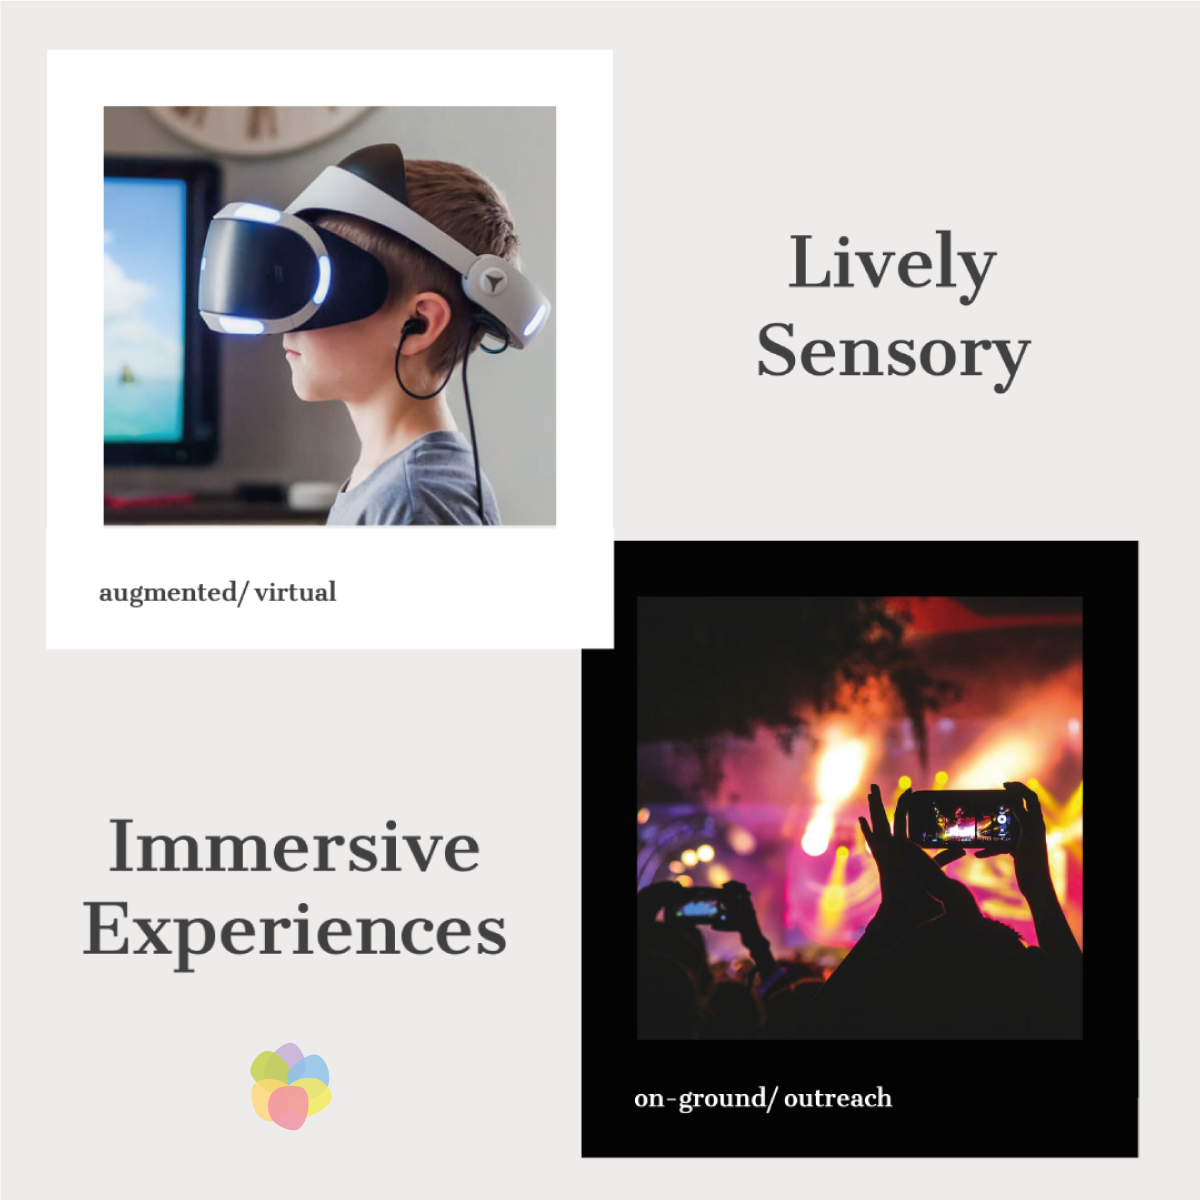 Acquiring mindspace is what we always aim for through immersive experiences. Let's talk! #OpenForBusiness  #Experiences #SensoryMarketing #Strategy #ImmersiveExperiences #ExperientialMarketing #Advertising #AdvertisingIndia #AdvertisingLife #Huddlers #WeHuddle #HuddlersOriginalpic.twitter.com/Pn1a1DeS0r